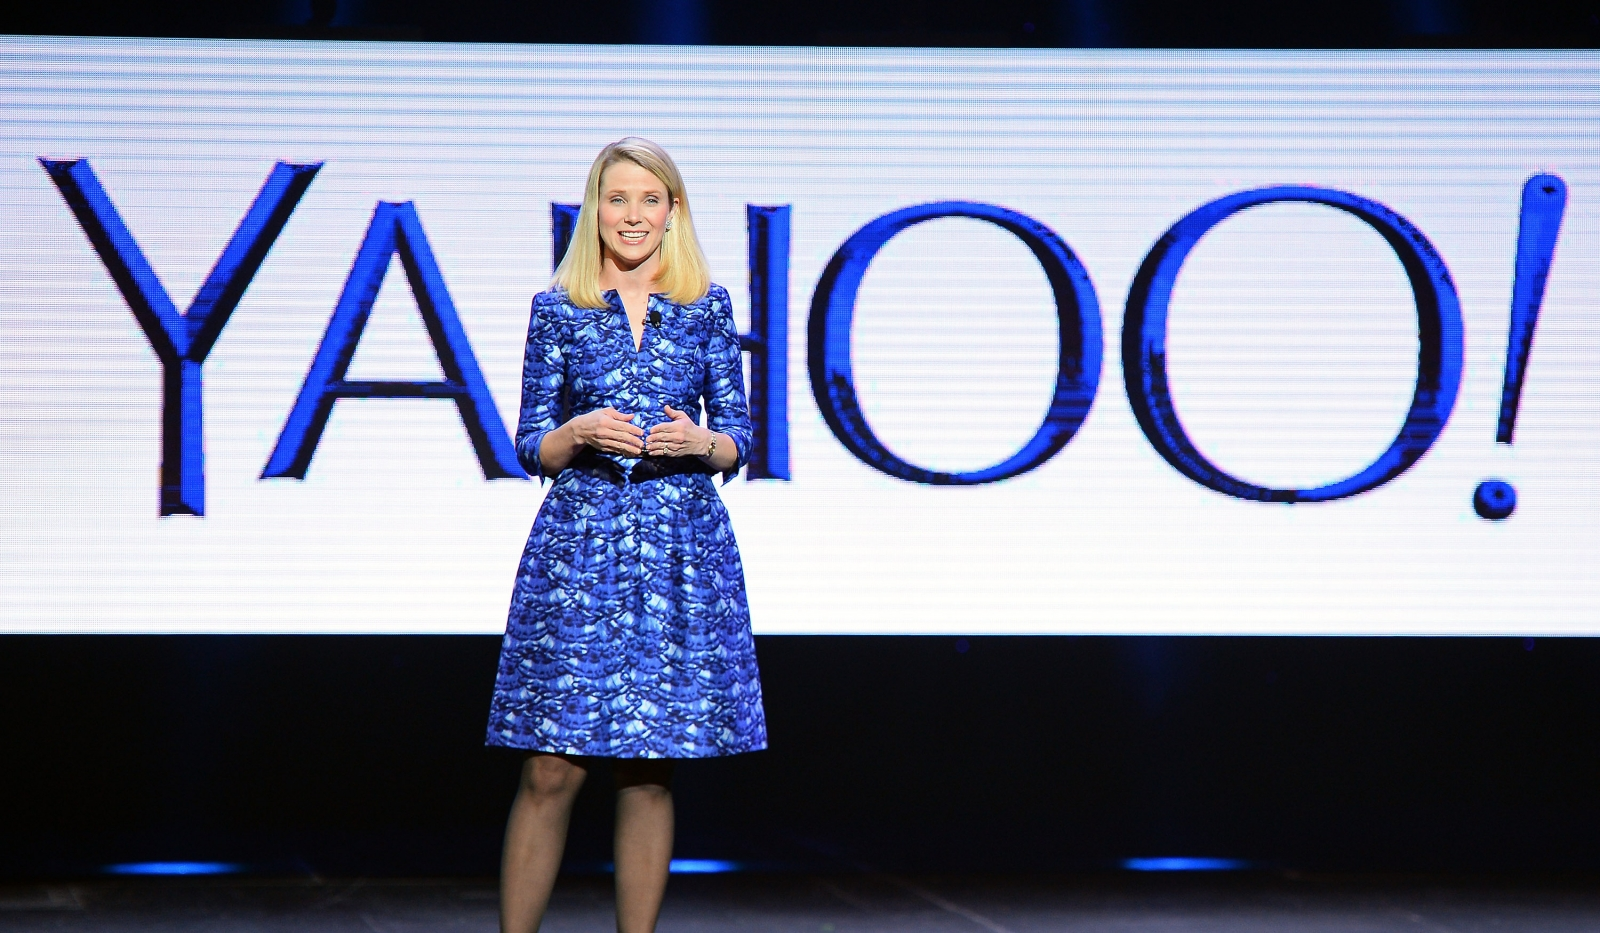 Verizon completes Yahoo deal, Marissa Mayer resigns